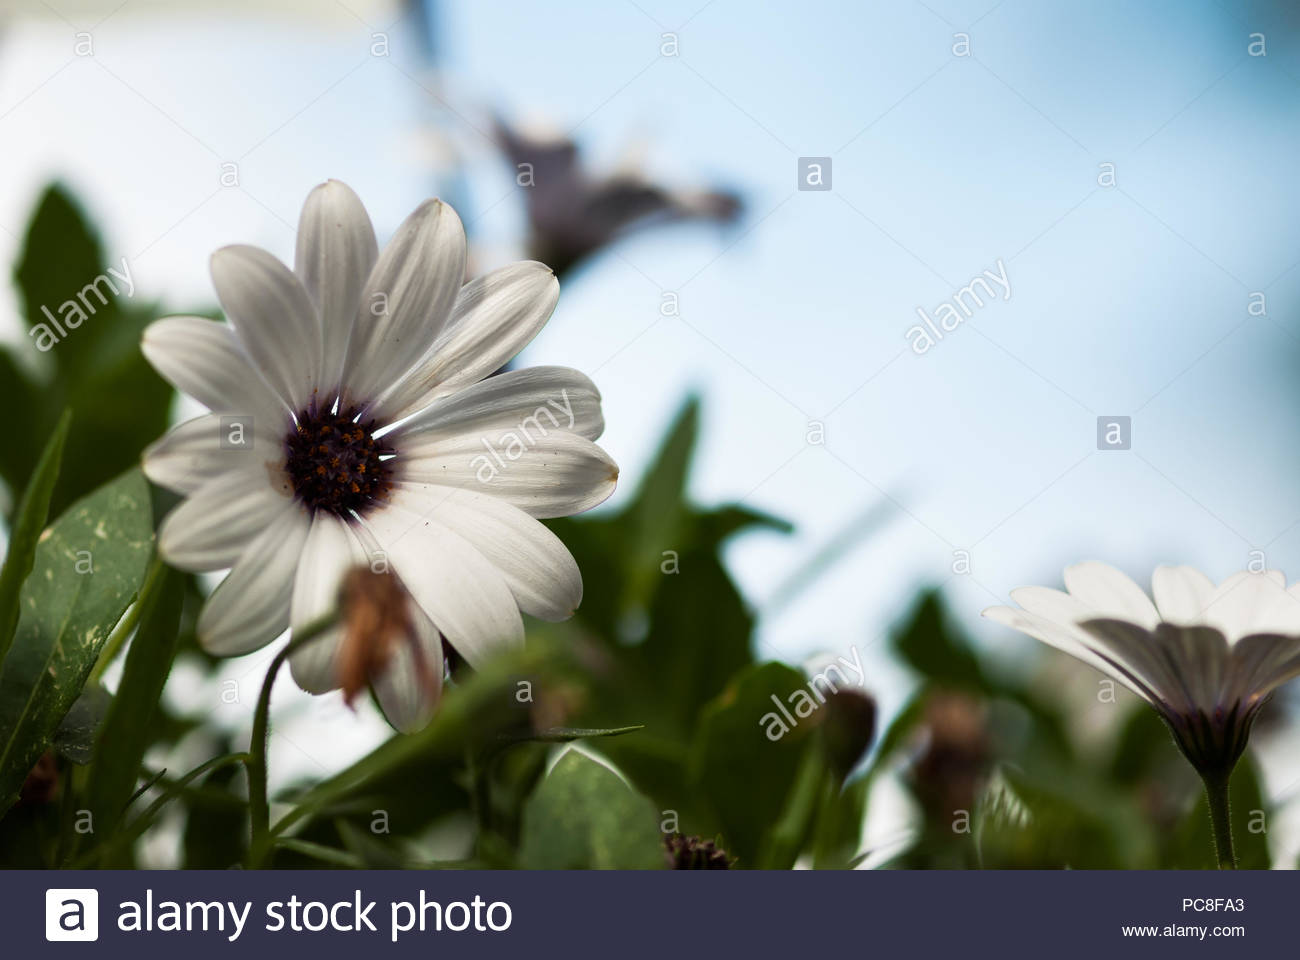 White flower with purple center stock photos white flower with a white african daisy flower with a purple center rests among green leaves with mightylinksfo